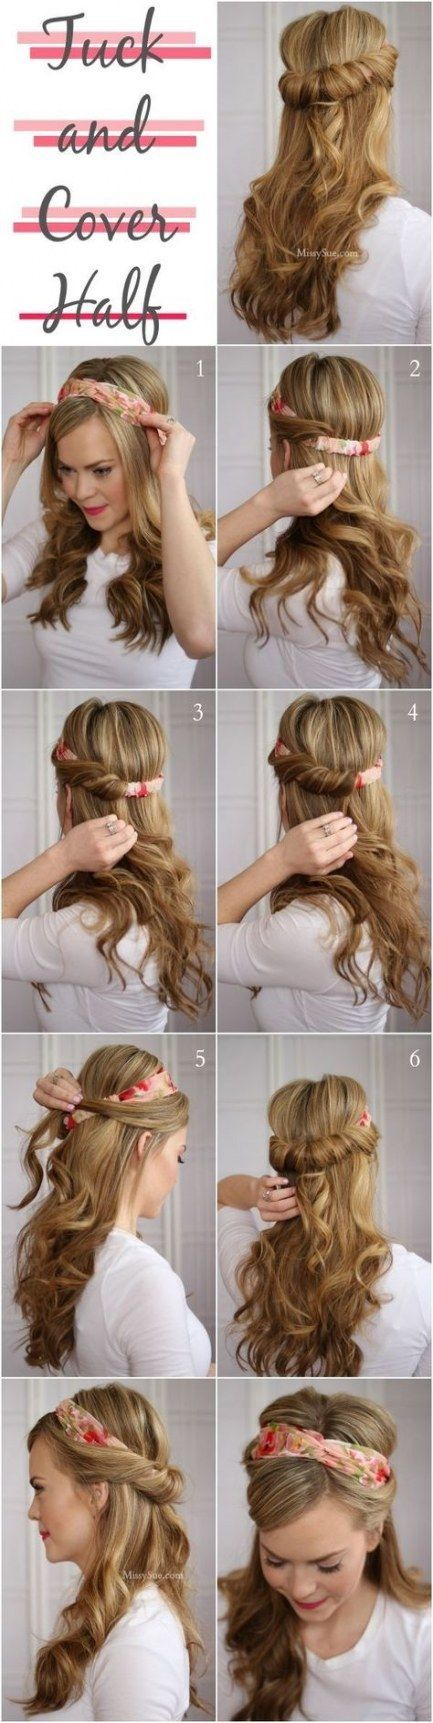 Hair easy quick lazy girl 67 Super ideas